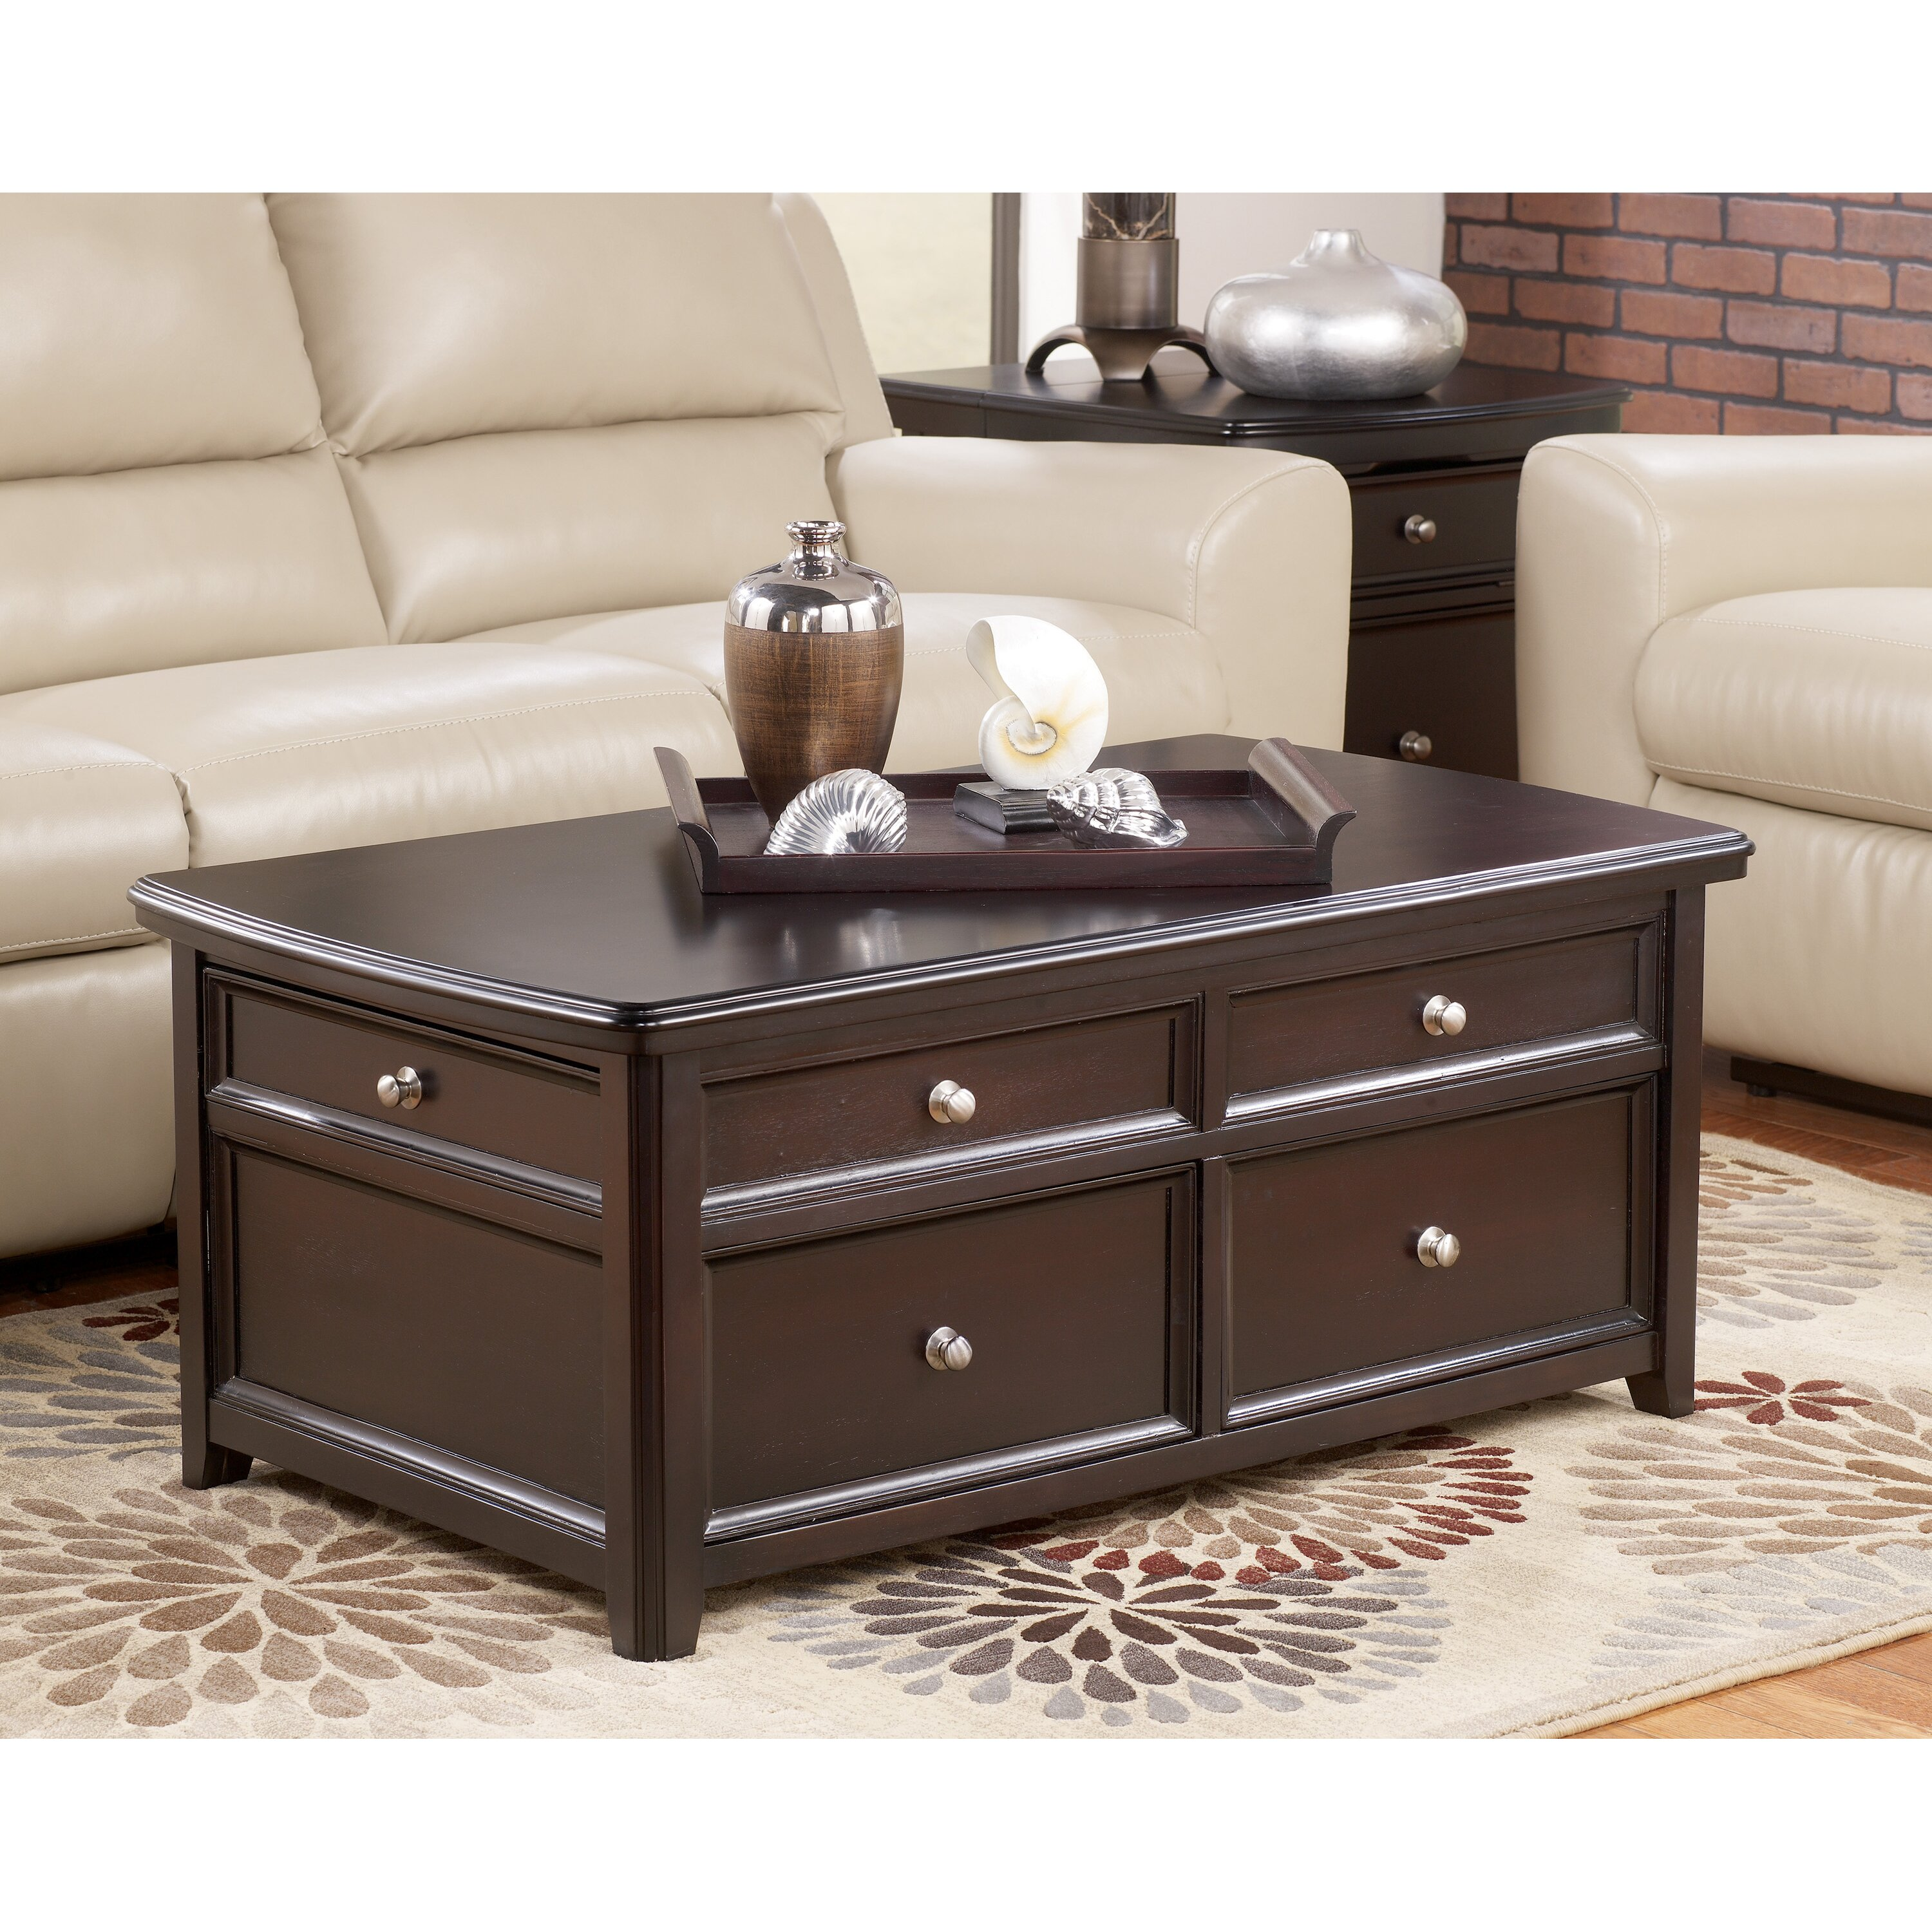 Darby Home Co Hancock Trunk Coffee Table With Lift Top Reviews Wayfair